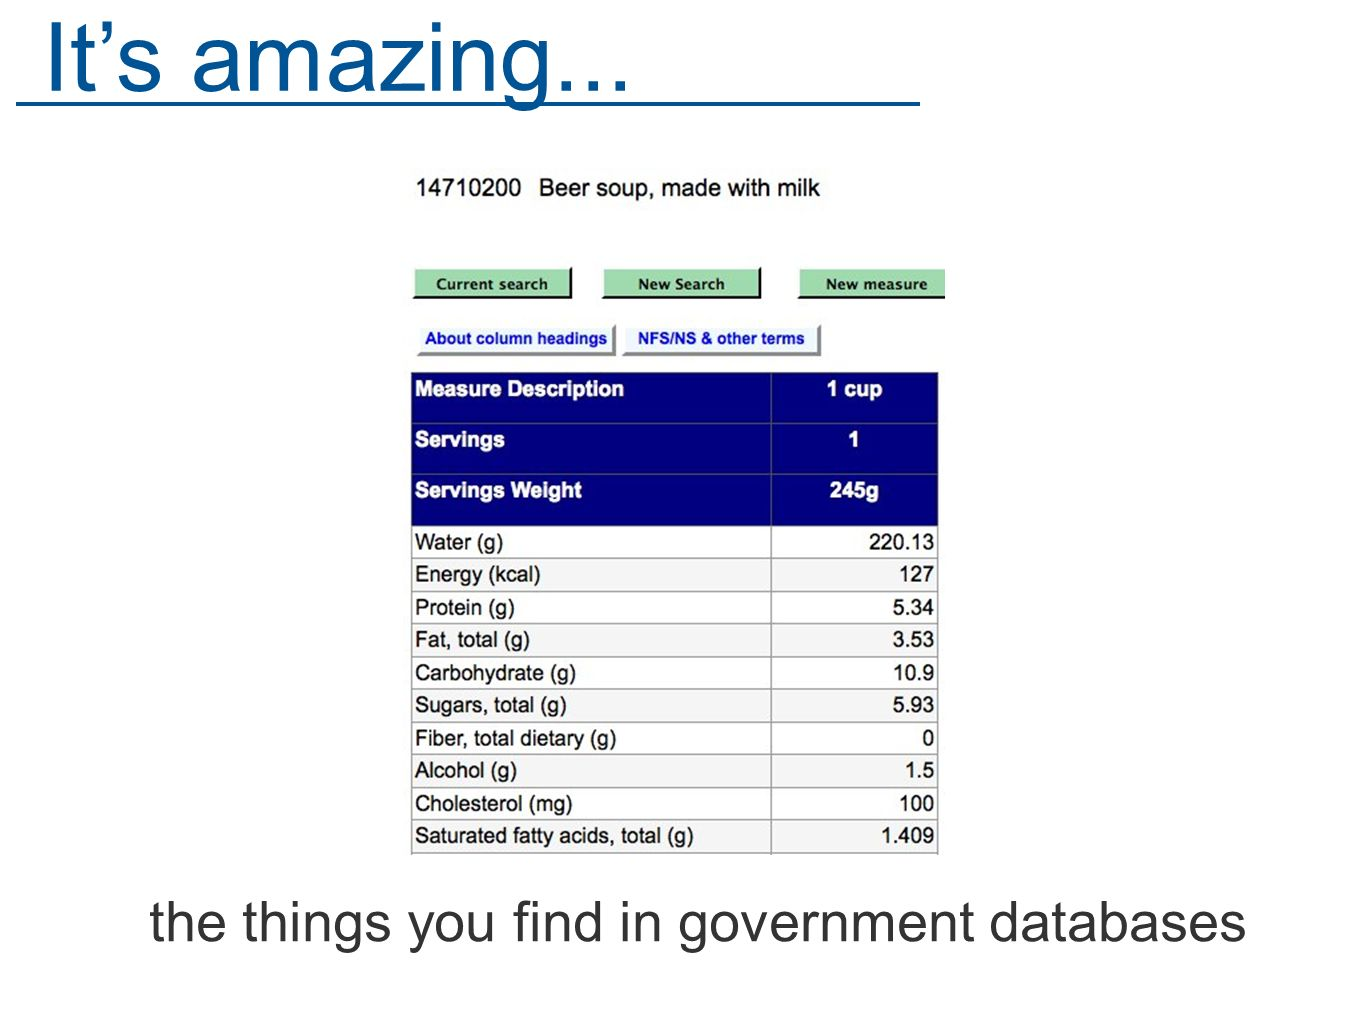 the things you find in government databases Its amazing...